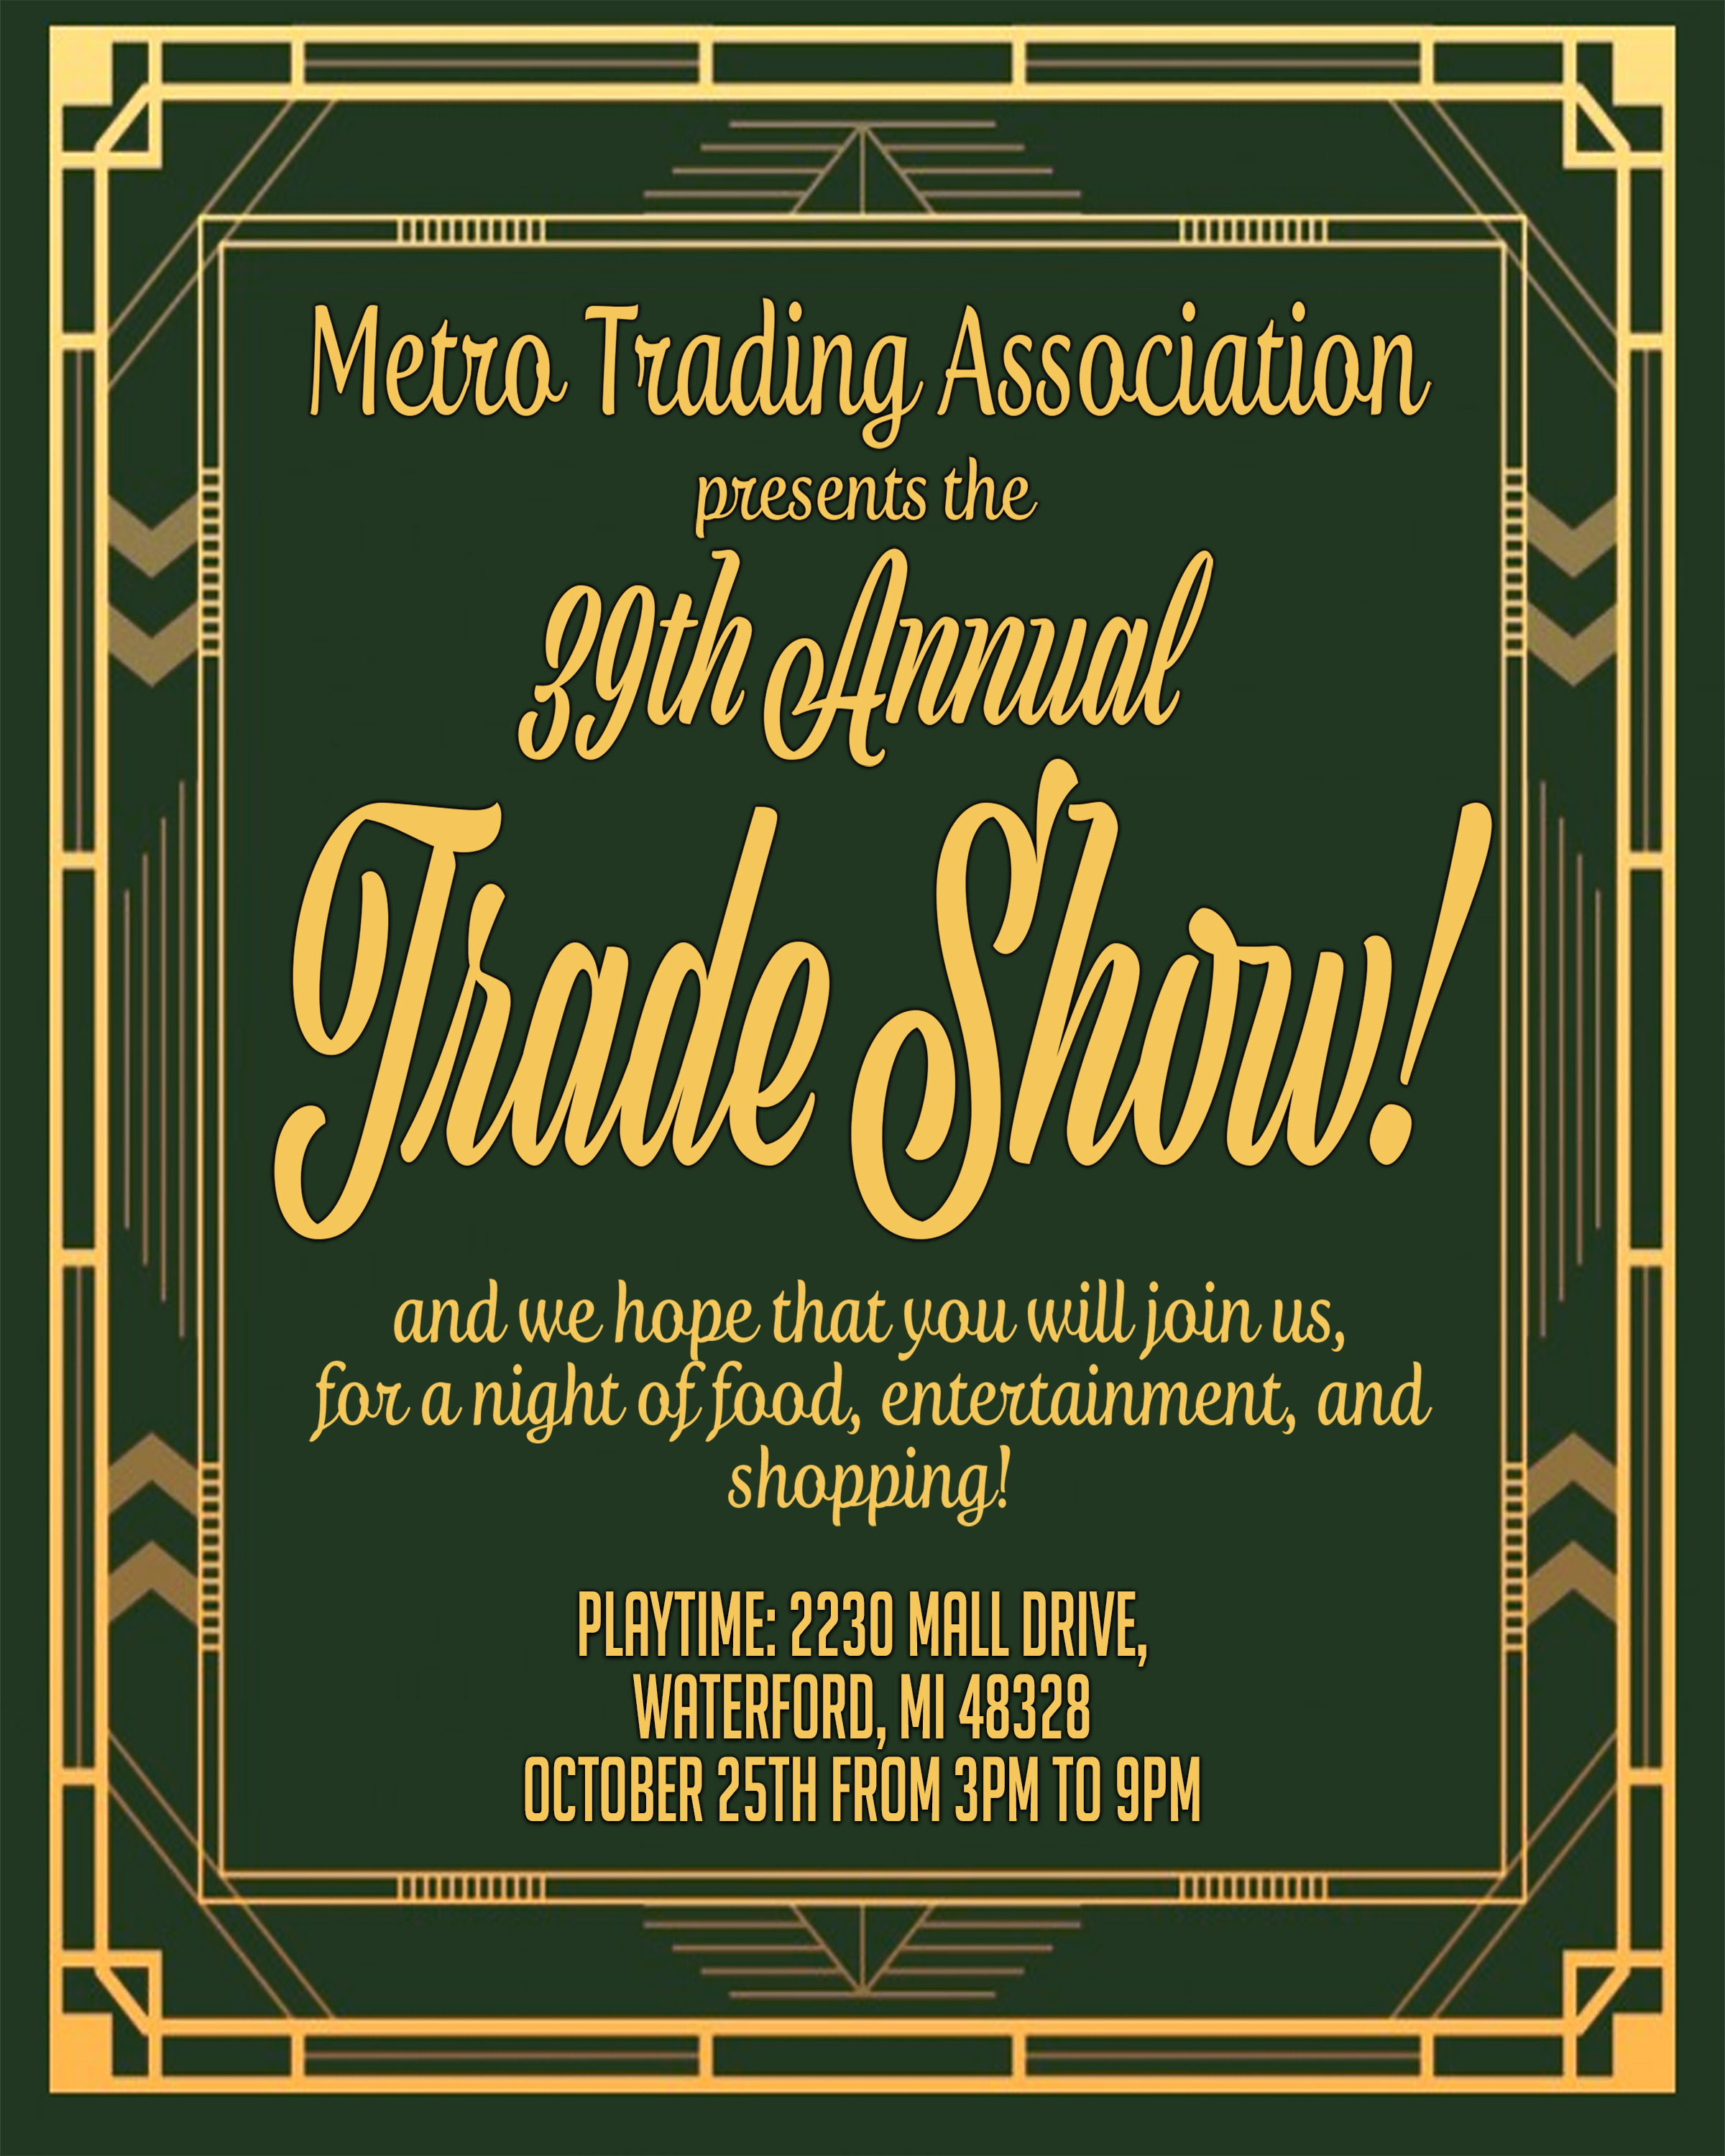 Metro Trading Associations 39th Annual Trade Show